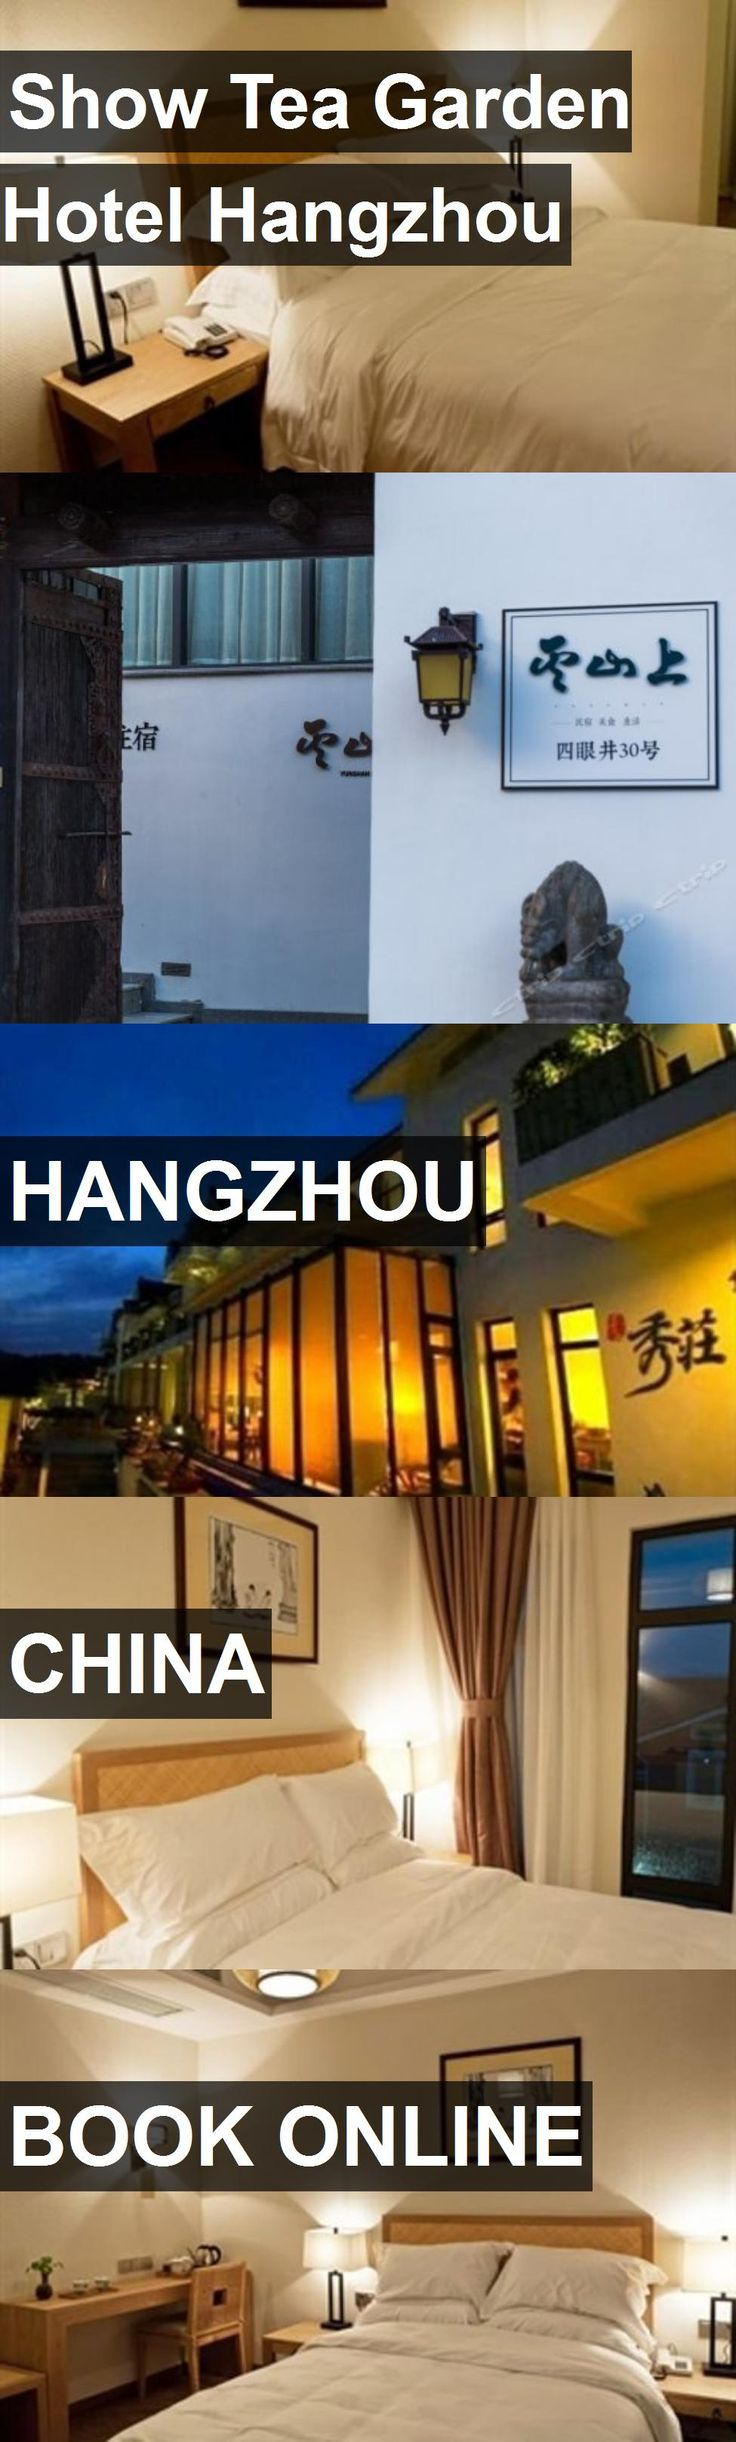 Show Tea Garden Hotel Hangzhou in Hangzhou, China. For more information, photos, reviews and best prices please follow the link. #China #Hangzhou #travel #vacation #hotel